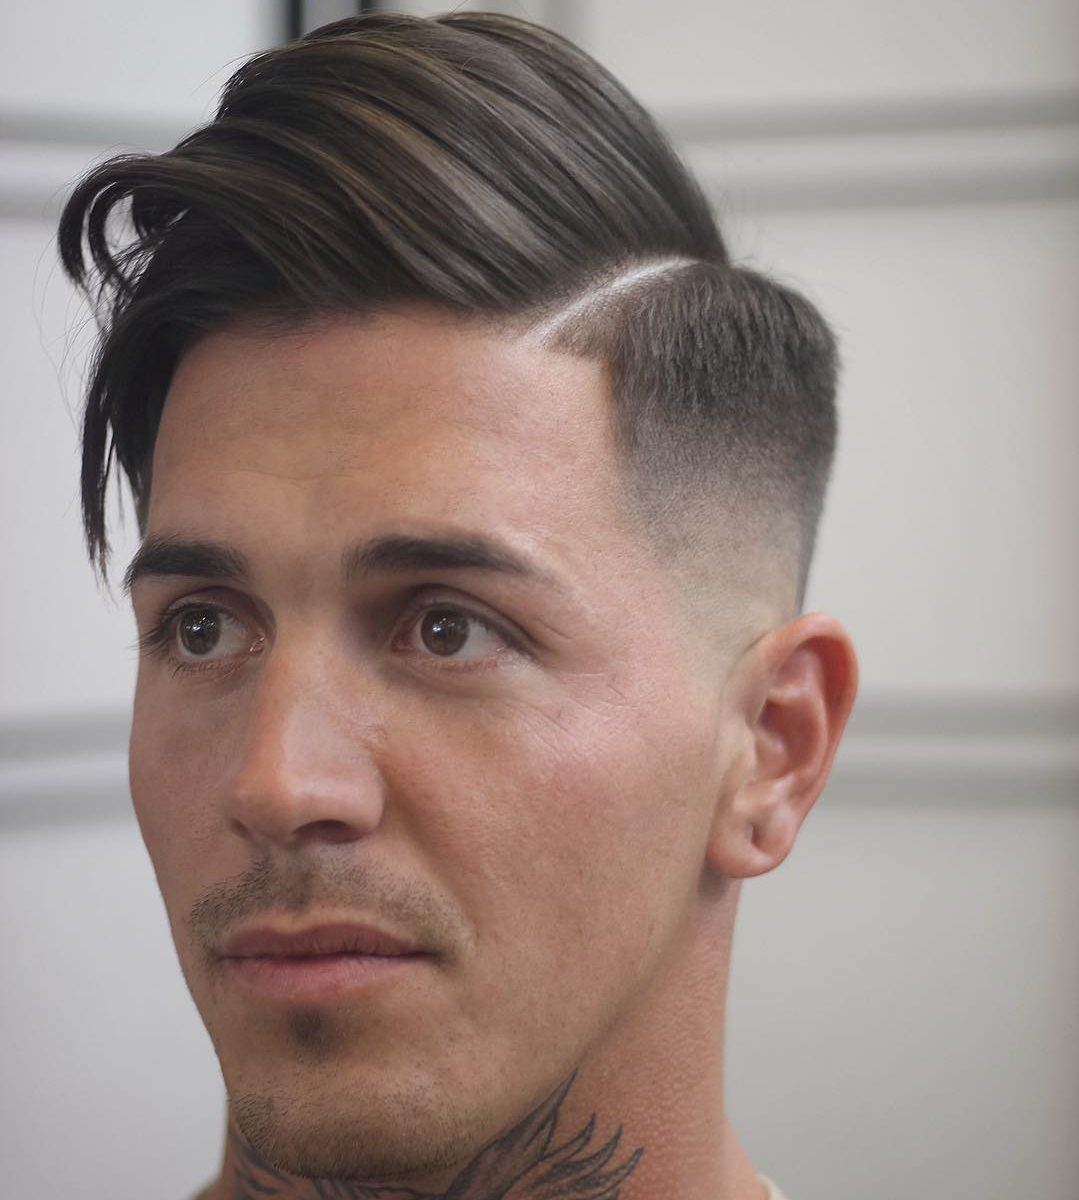 Hairstyles 2017 Medium Hair Mens : ... side-part-hairstyle-medium-haircuts-for-men-fade-1-e1487290678383.jpg